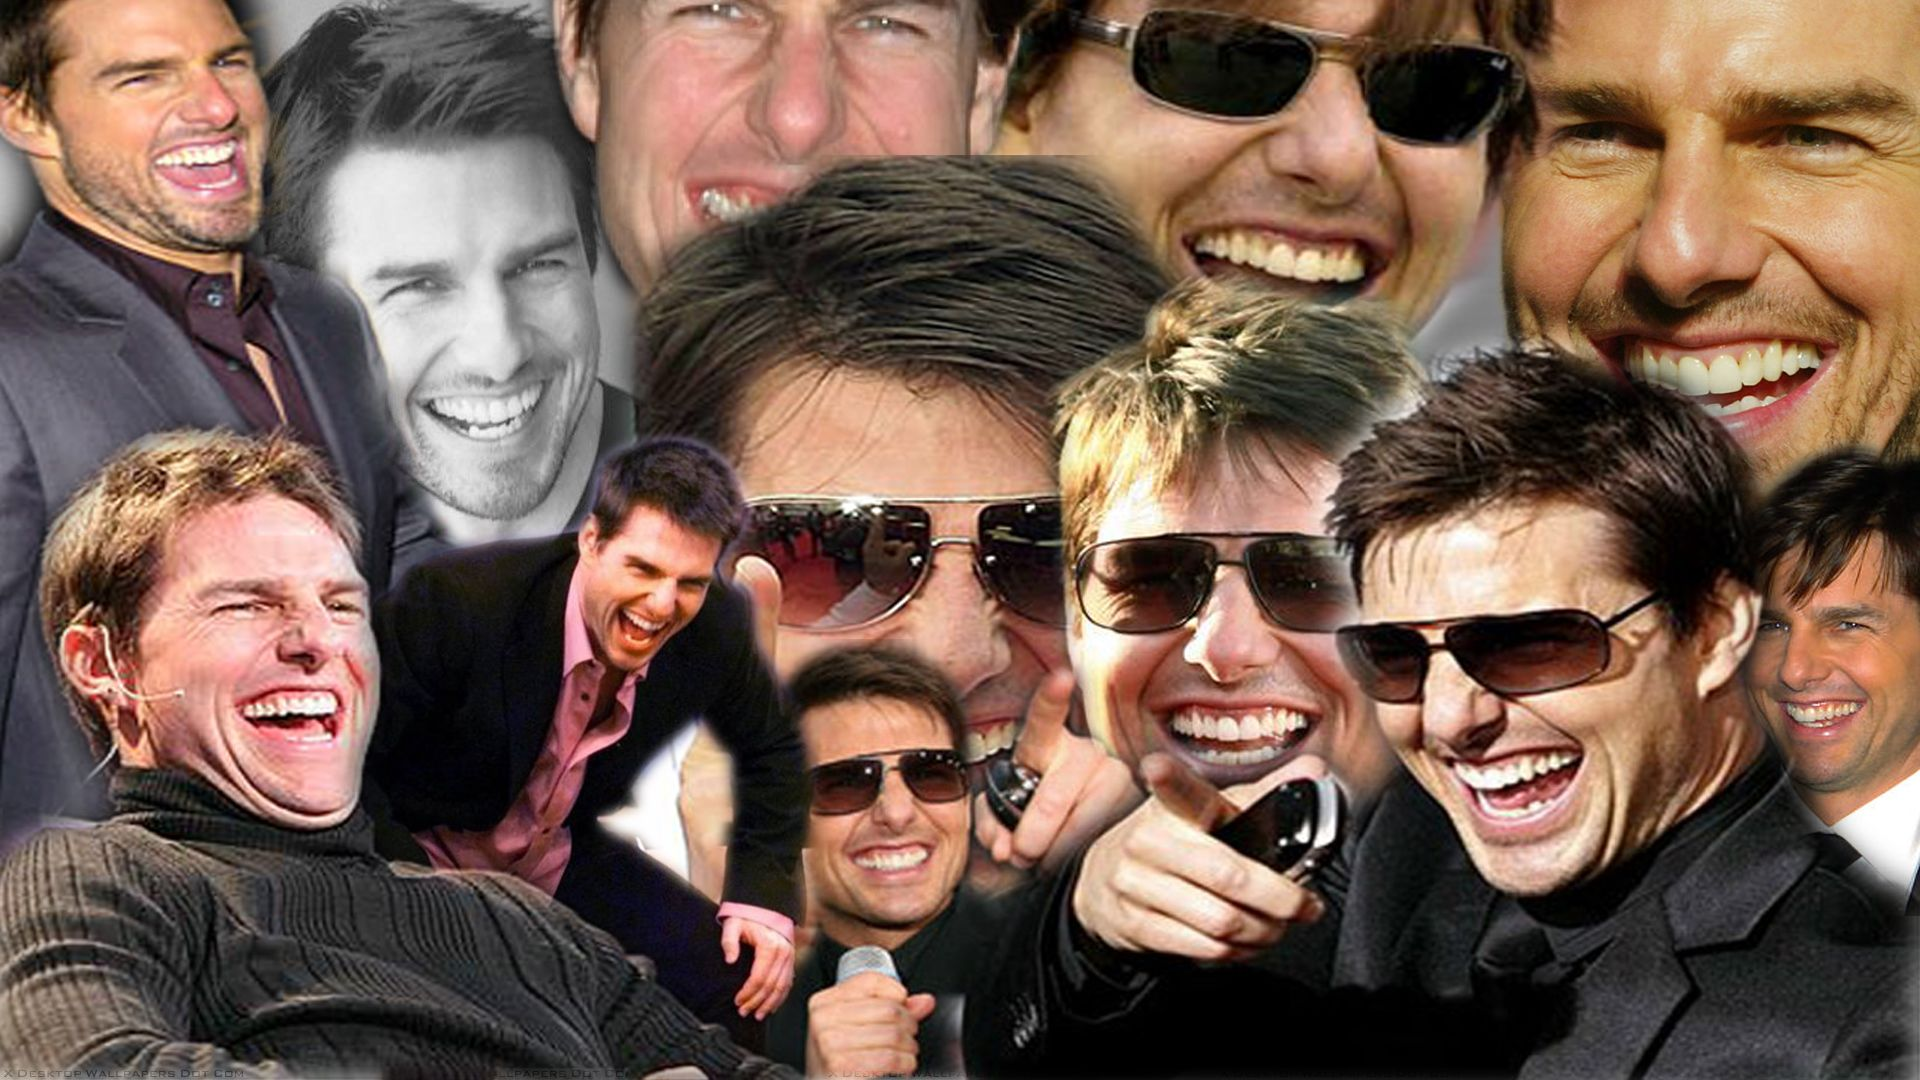 Tom Cruise Laughing HD Wallpaper 1920x1080 ID45629 Happy 1920x1080